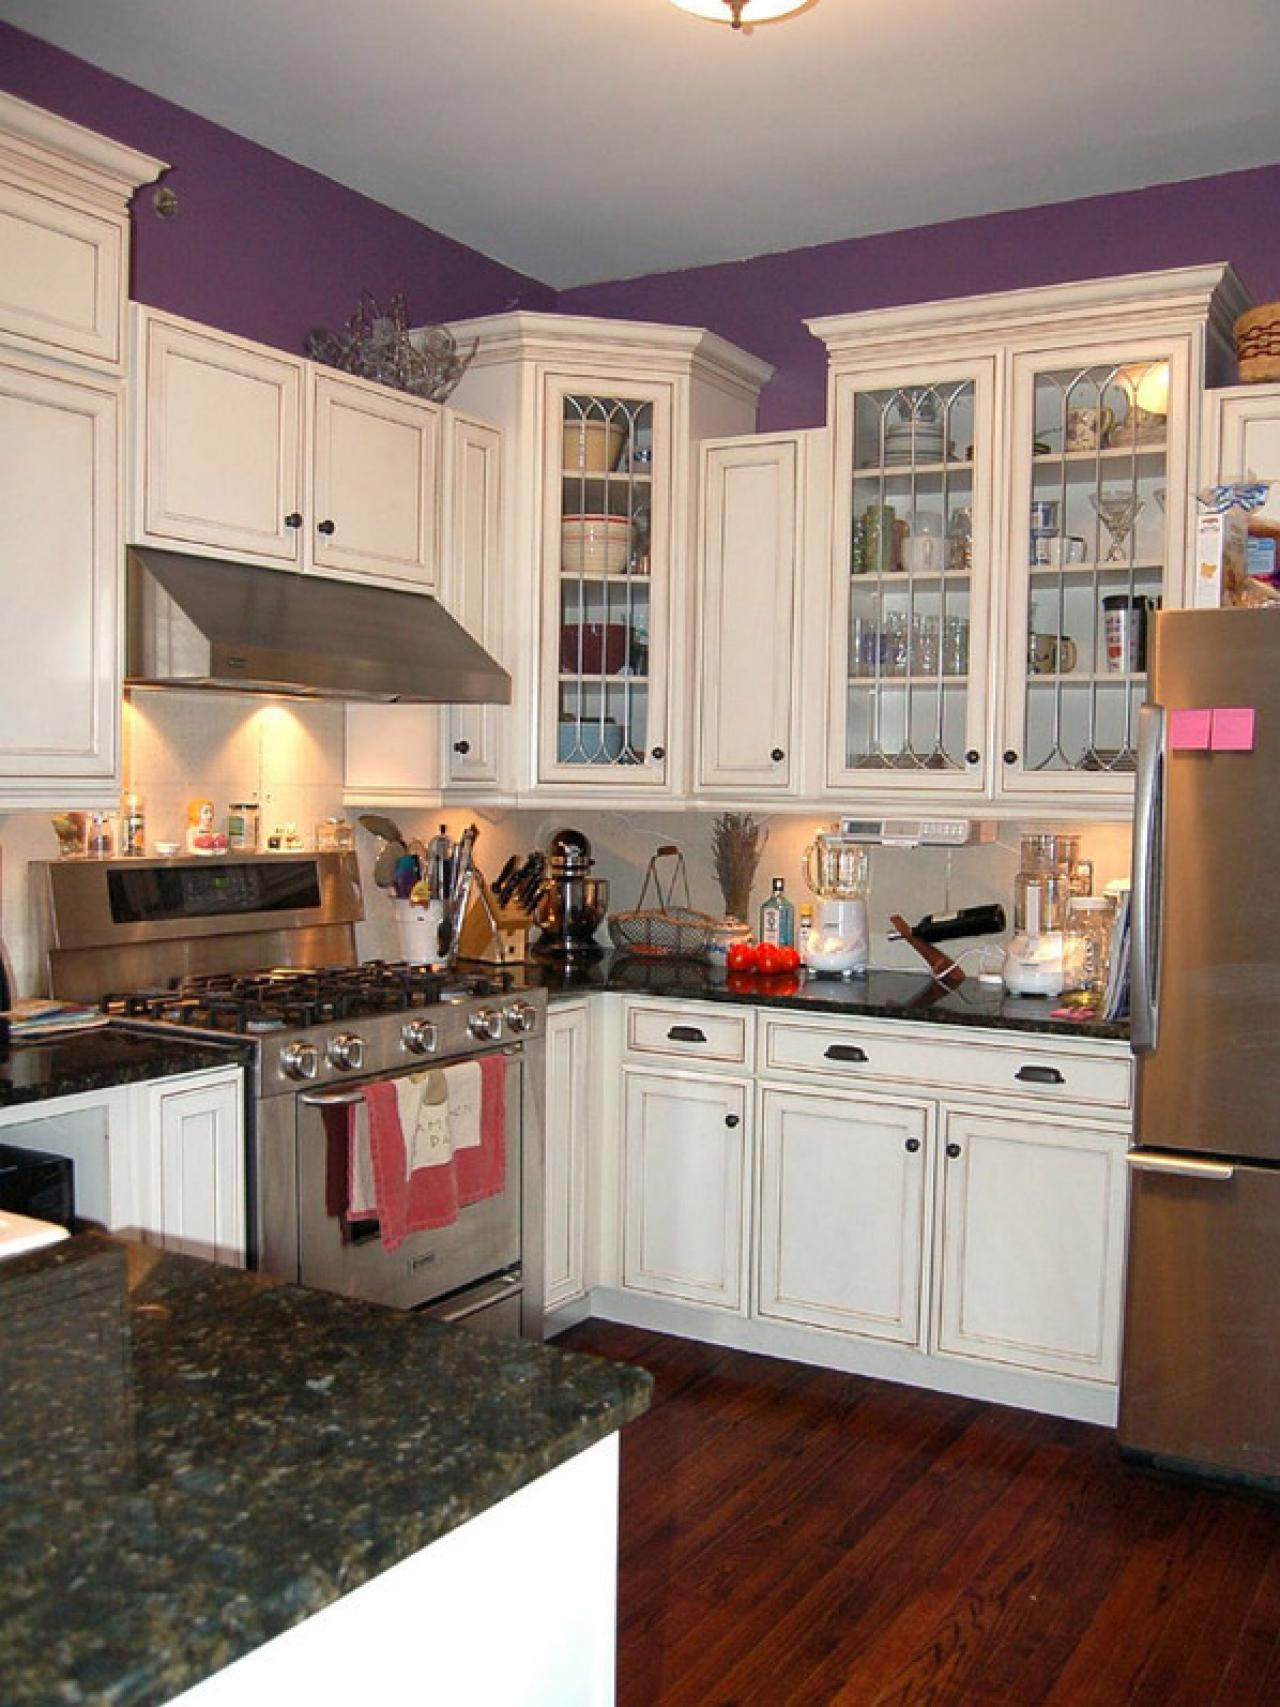 Small kitchen layouts pictures ideas tips from hgtv hgtv for Small kitchen ideas